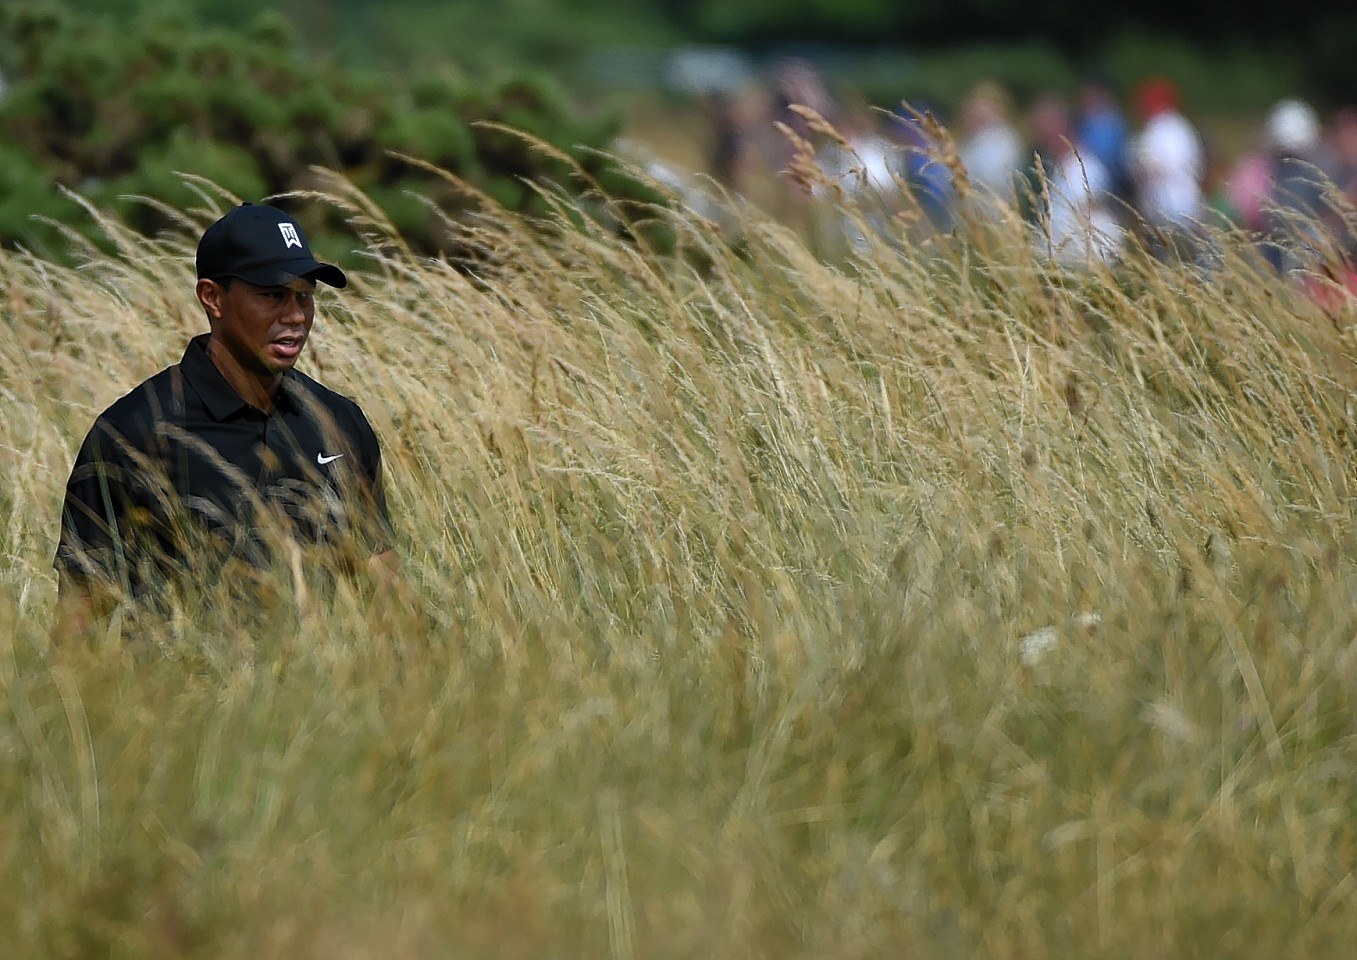 Phil Mickelson plays an iron shot from the rough